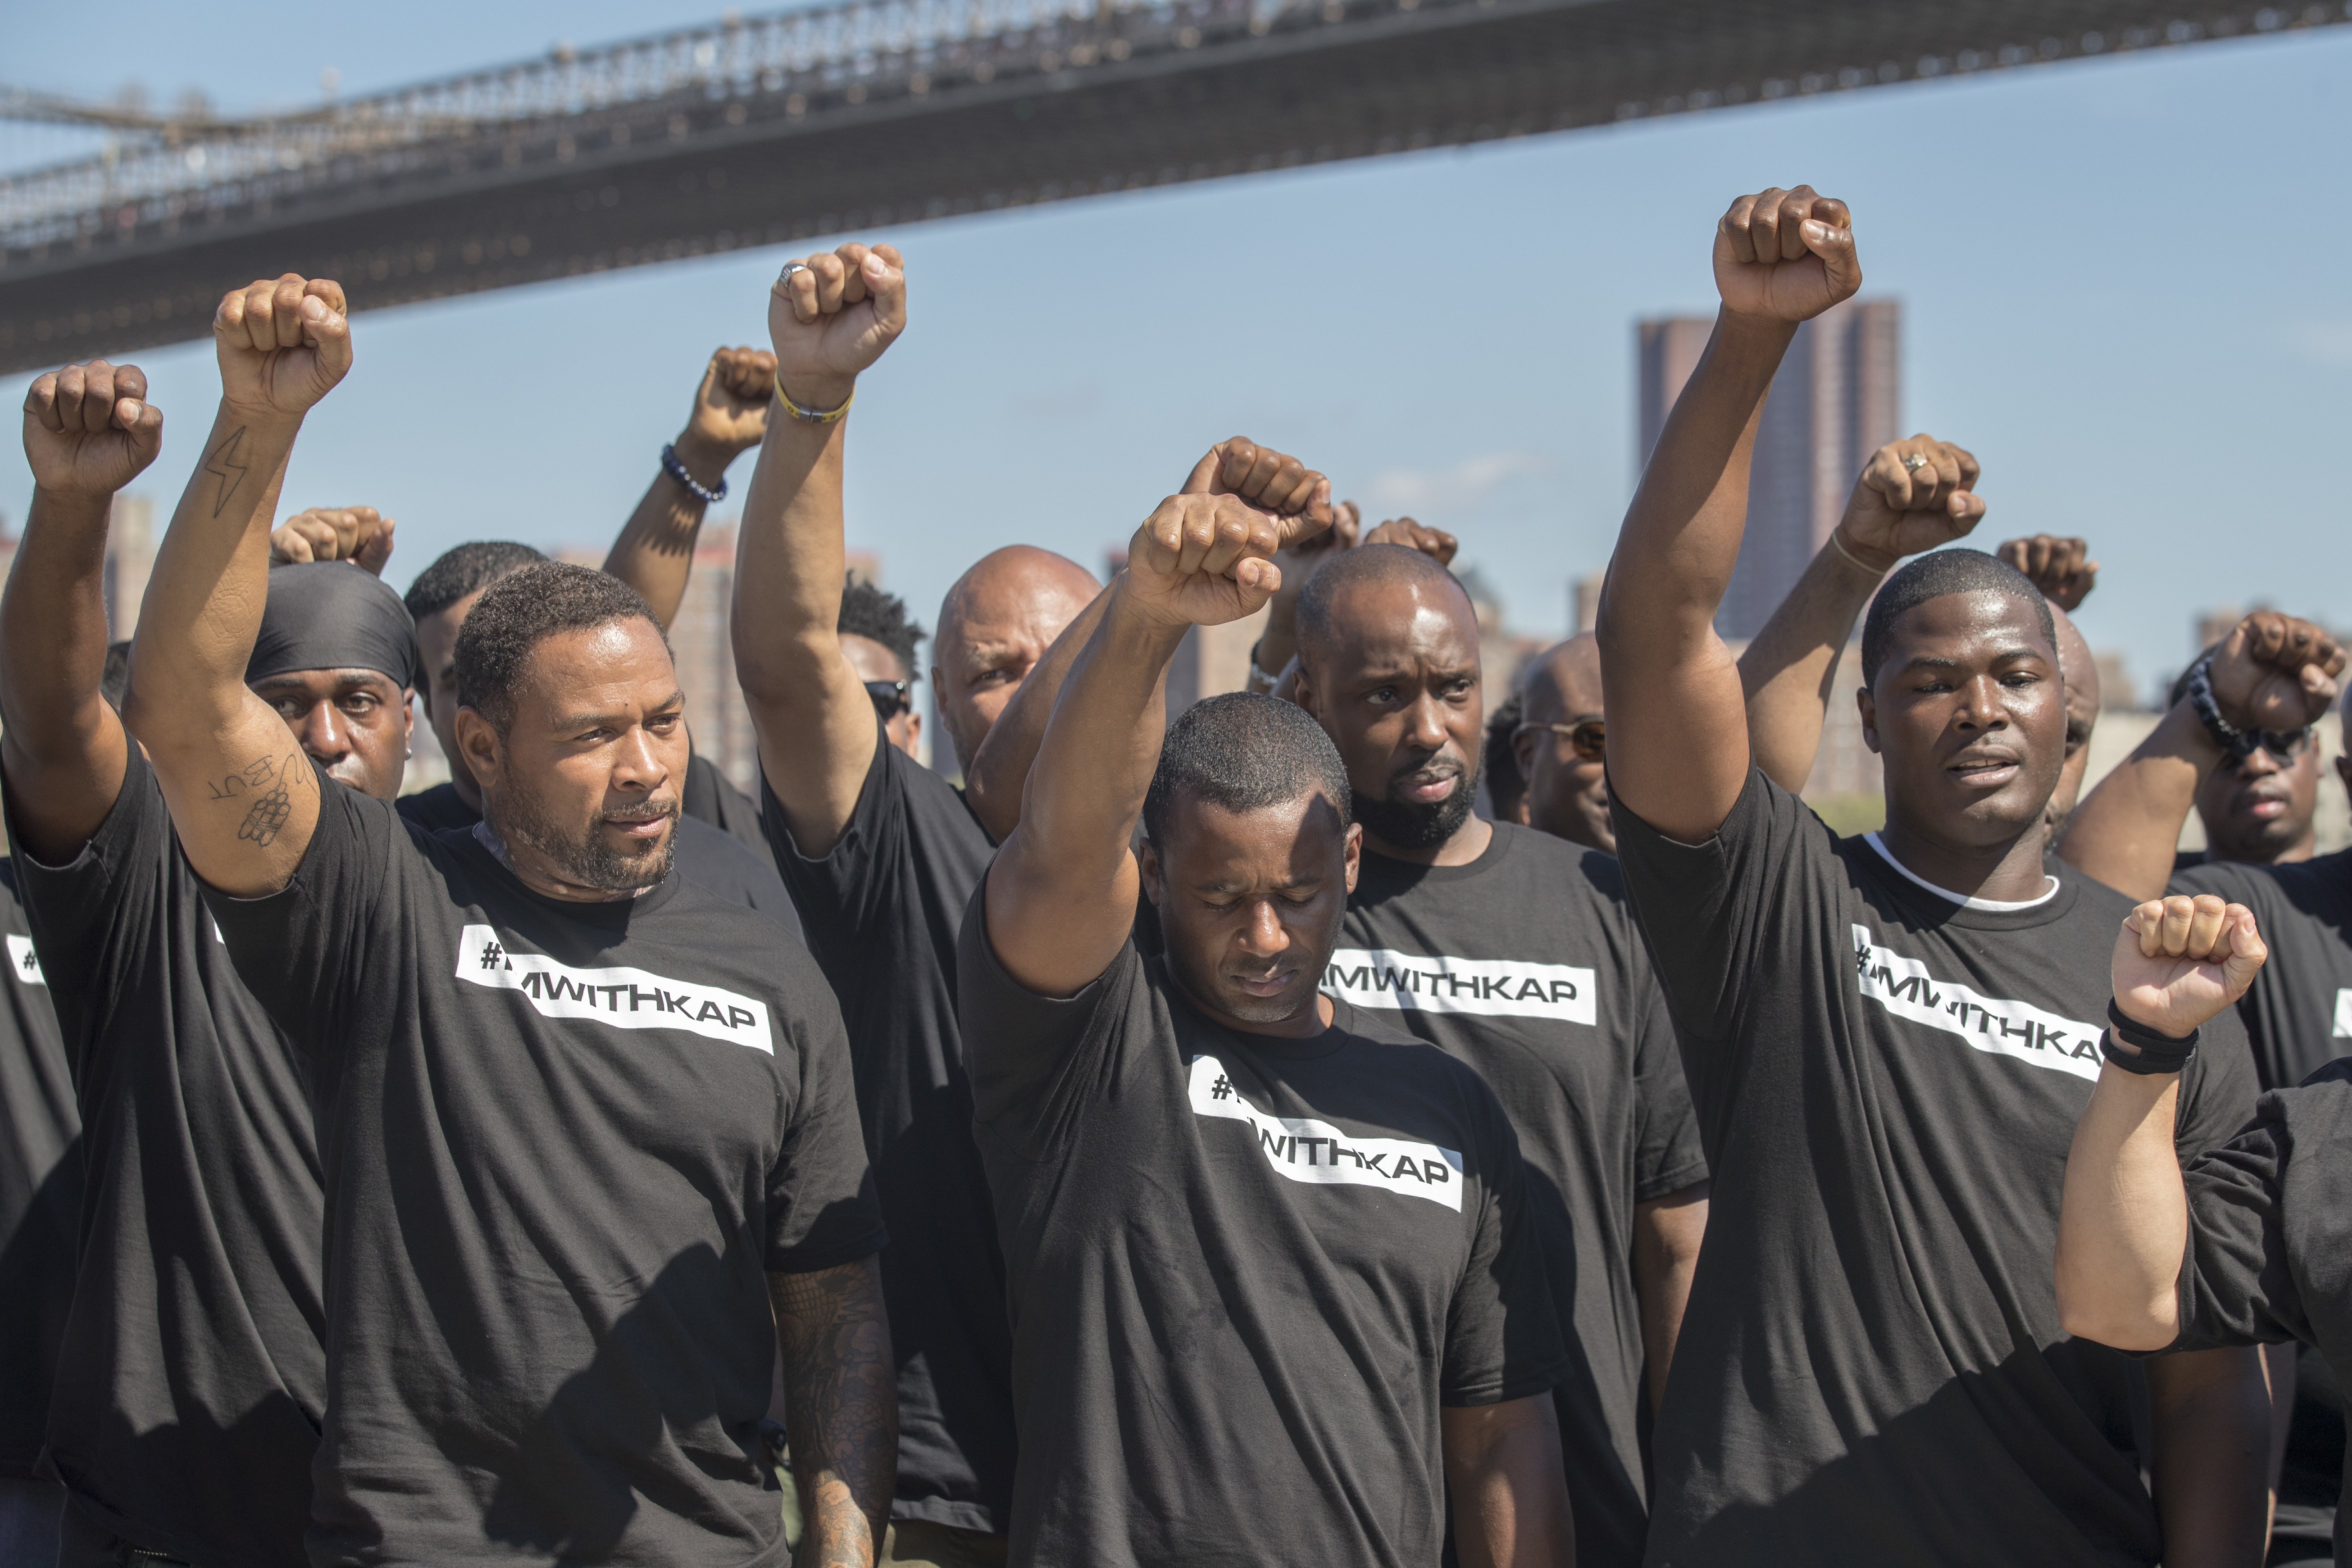 Members of law enforcement raise their fists during a rally to show support for Colin Kaepernick, Saturday, Aug. 19, 2017, in New York. (AP Photo/Mary Altaffer)<p></p>